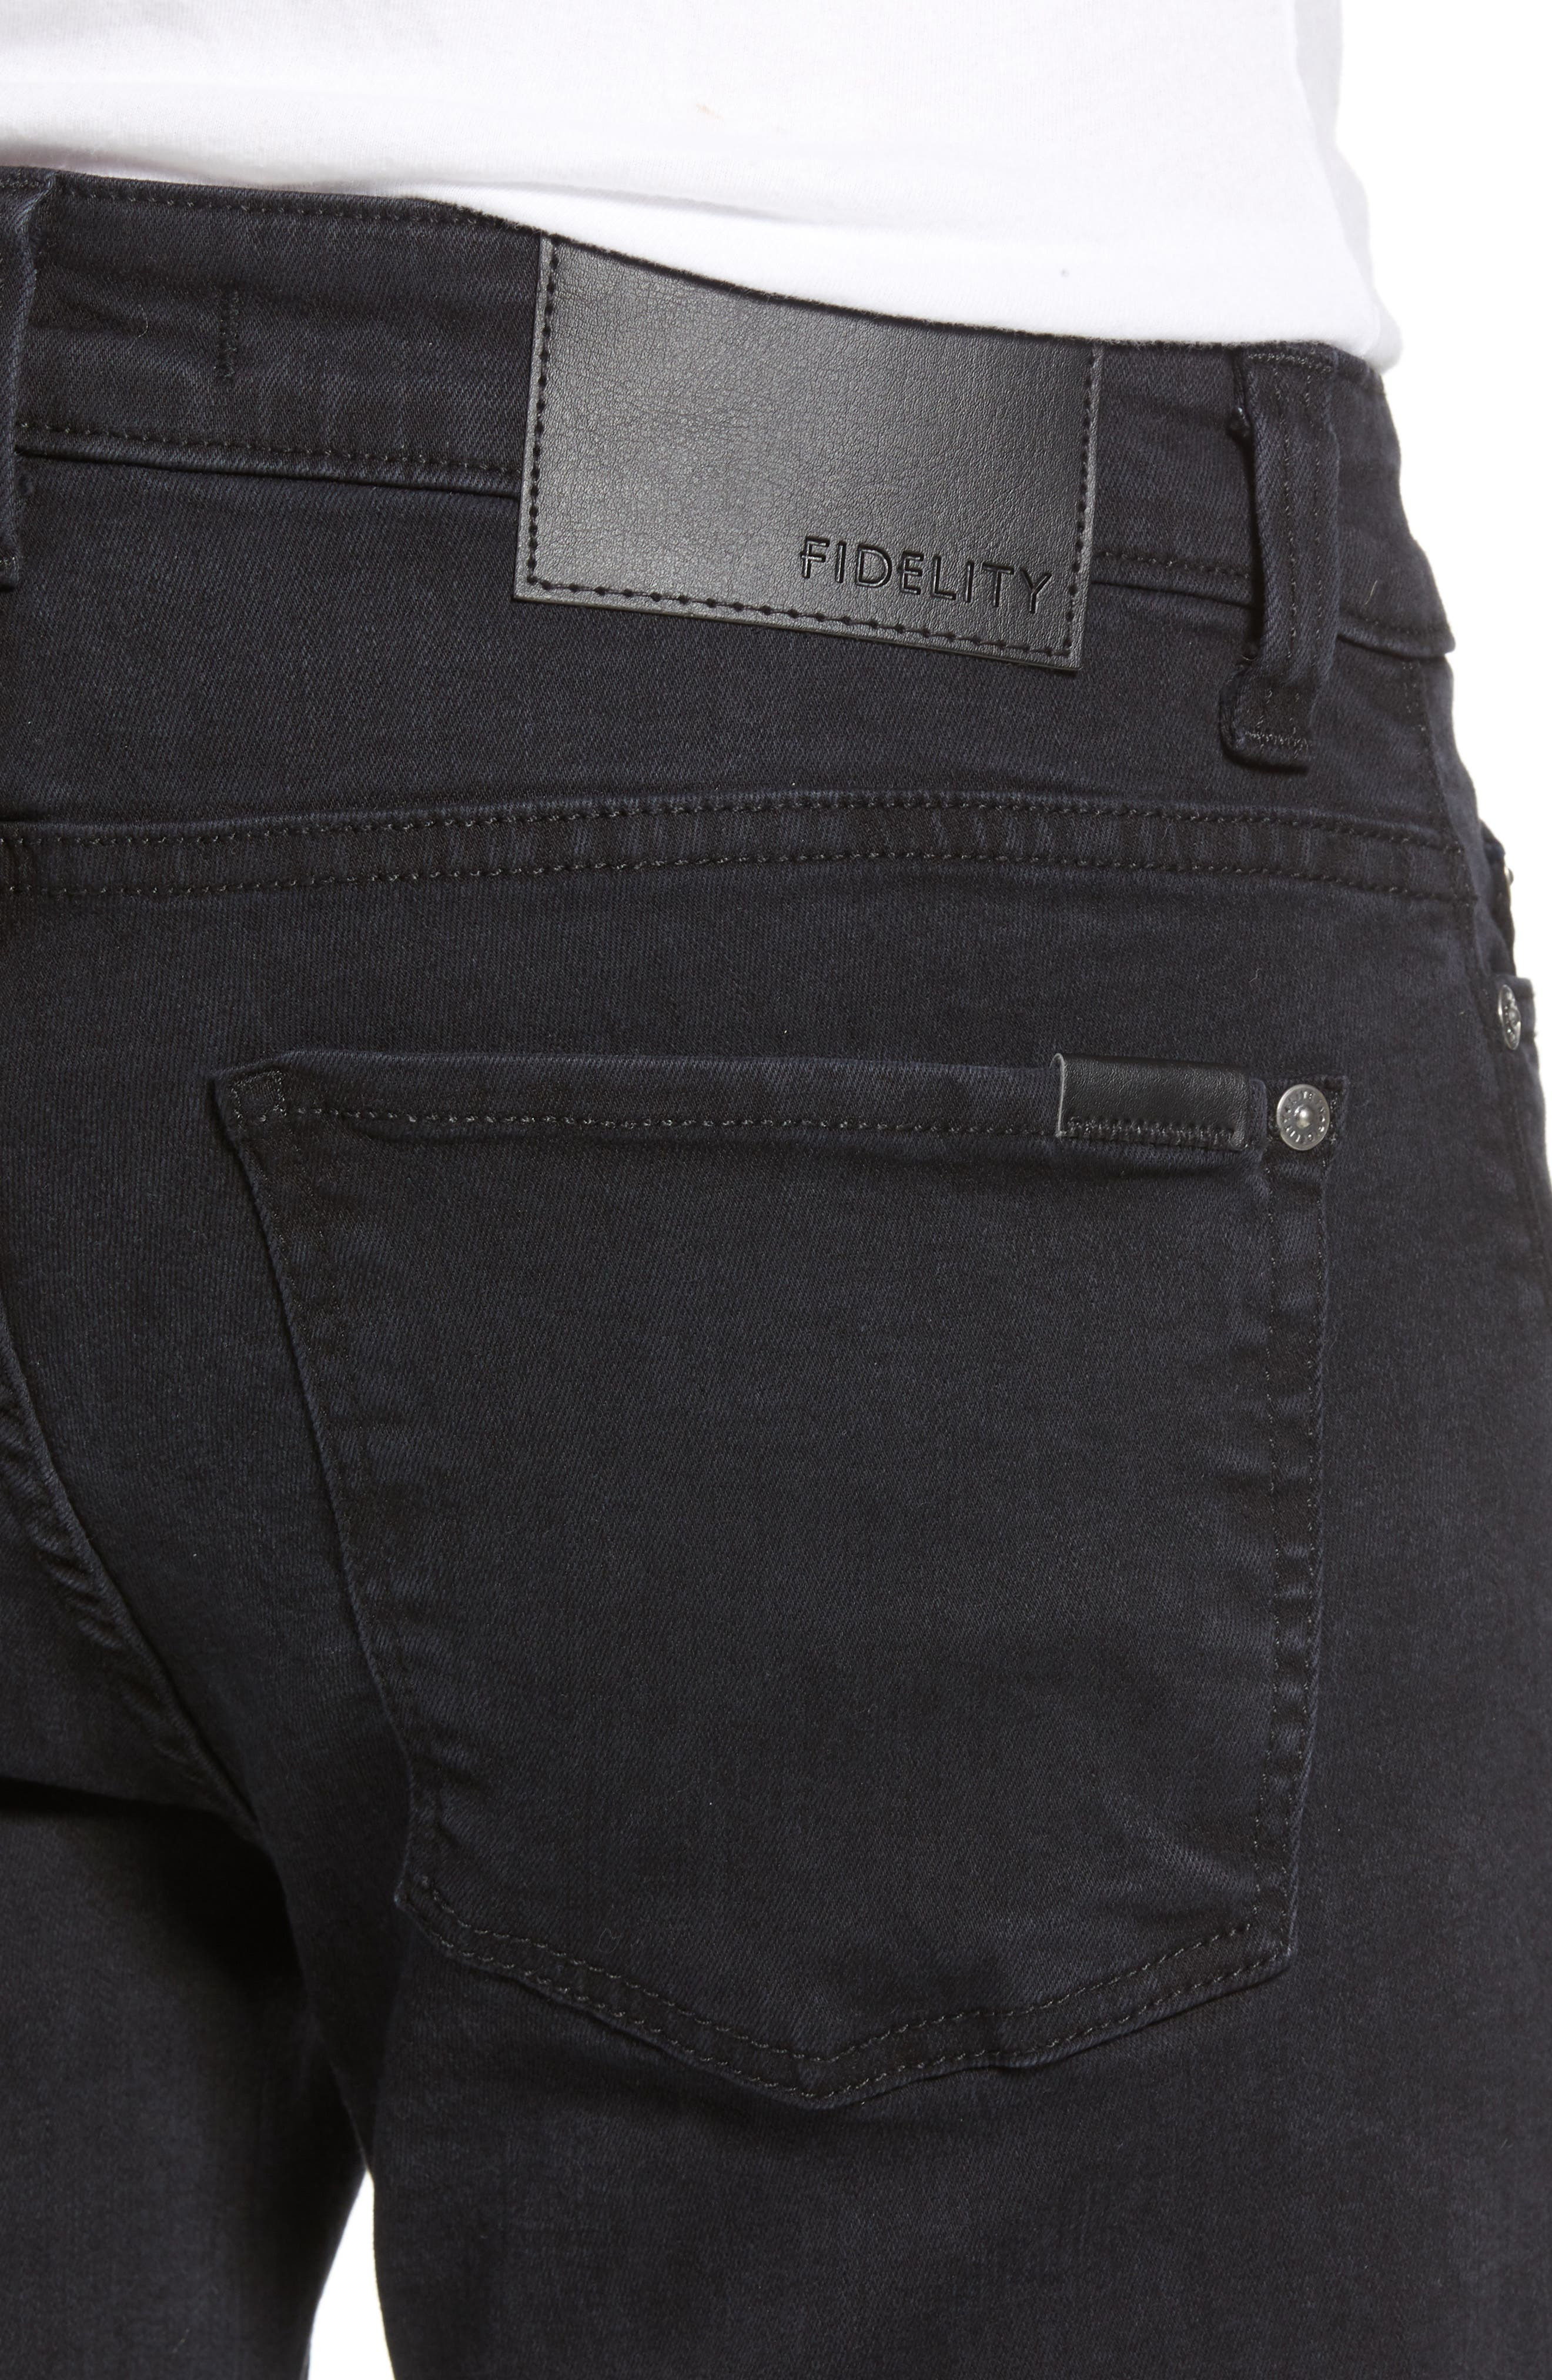 Alternate Image 4  - Fidelity Denim Torino Slim Fit Jeans (Blackbird)